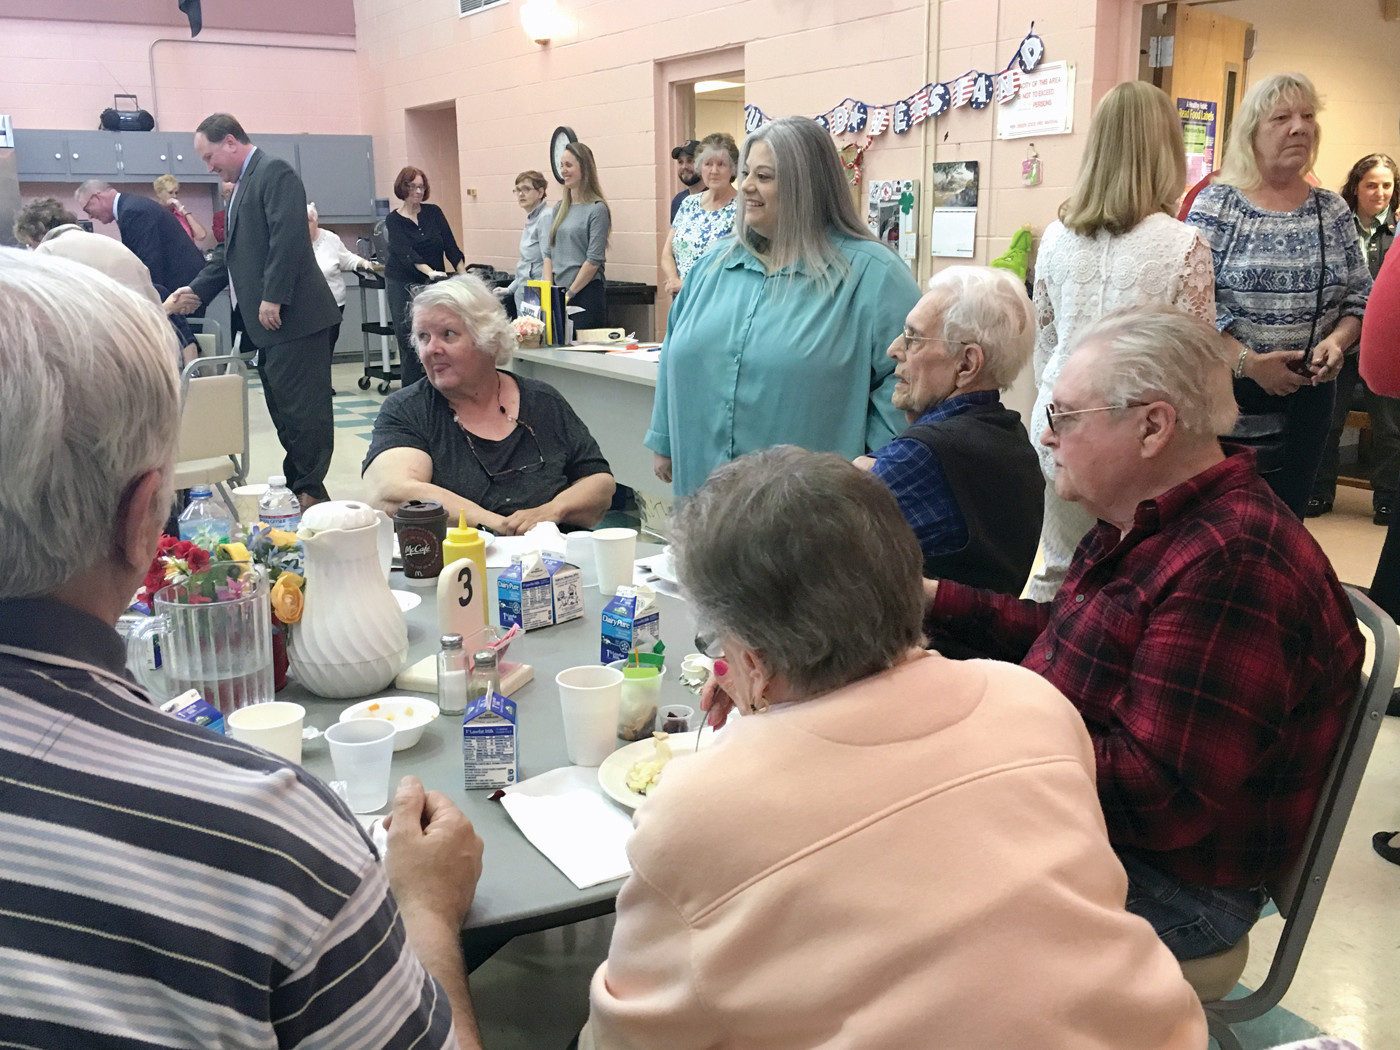 INTRODUCTIONS: Senator Jeanine Calkin meets with seniors during a meet and greet at the Pilgrim Senior Center on Tuesday.